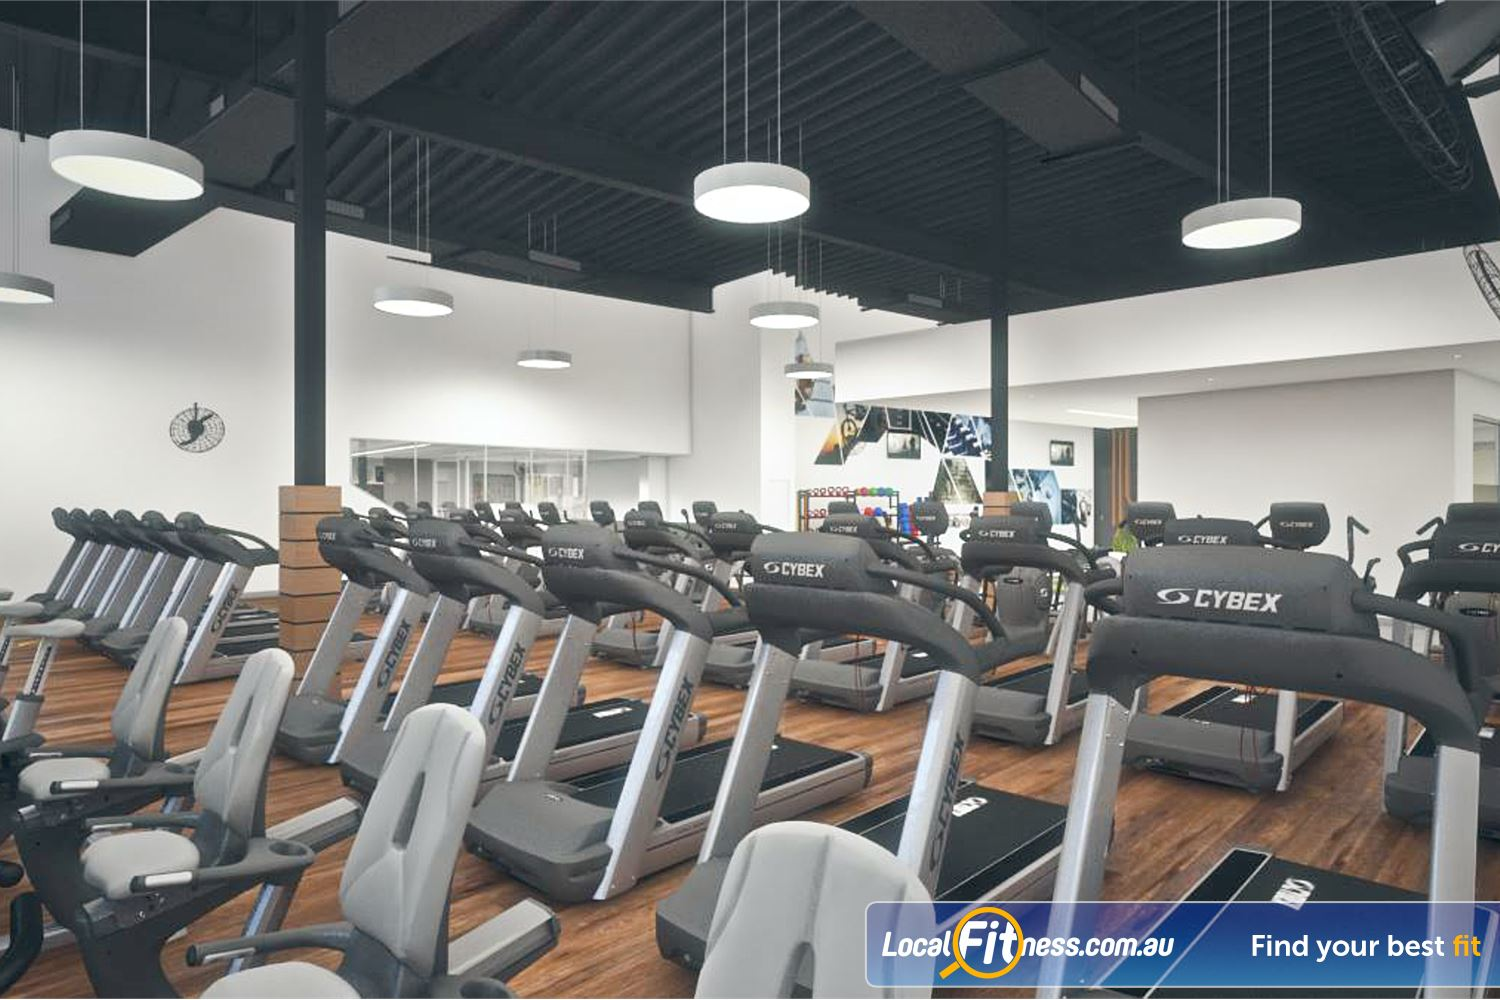 Goodlife Health Clubs Near Yangebup Tune into your favourite shows on your personalised LCD screen or cardio theatre.